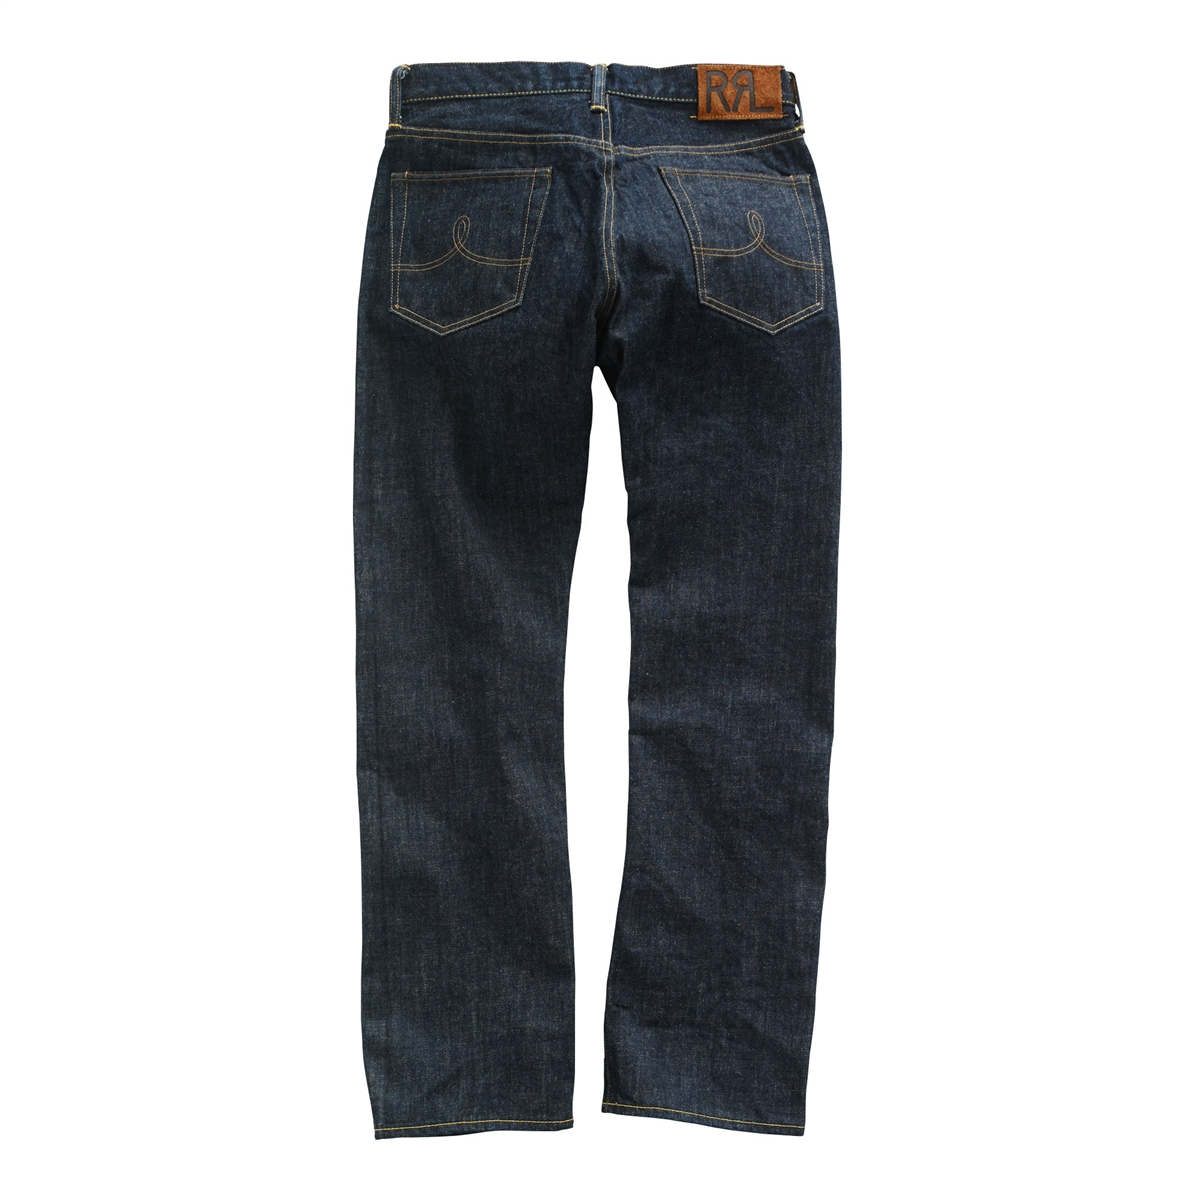 fa23b6e45a8d Ralph Lauren RRL Vintage Straight Leg Selvedge Denim Jeans Once Washed Dark  Wash - Premium Denim